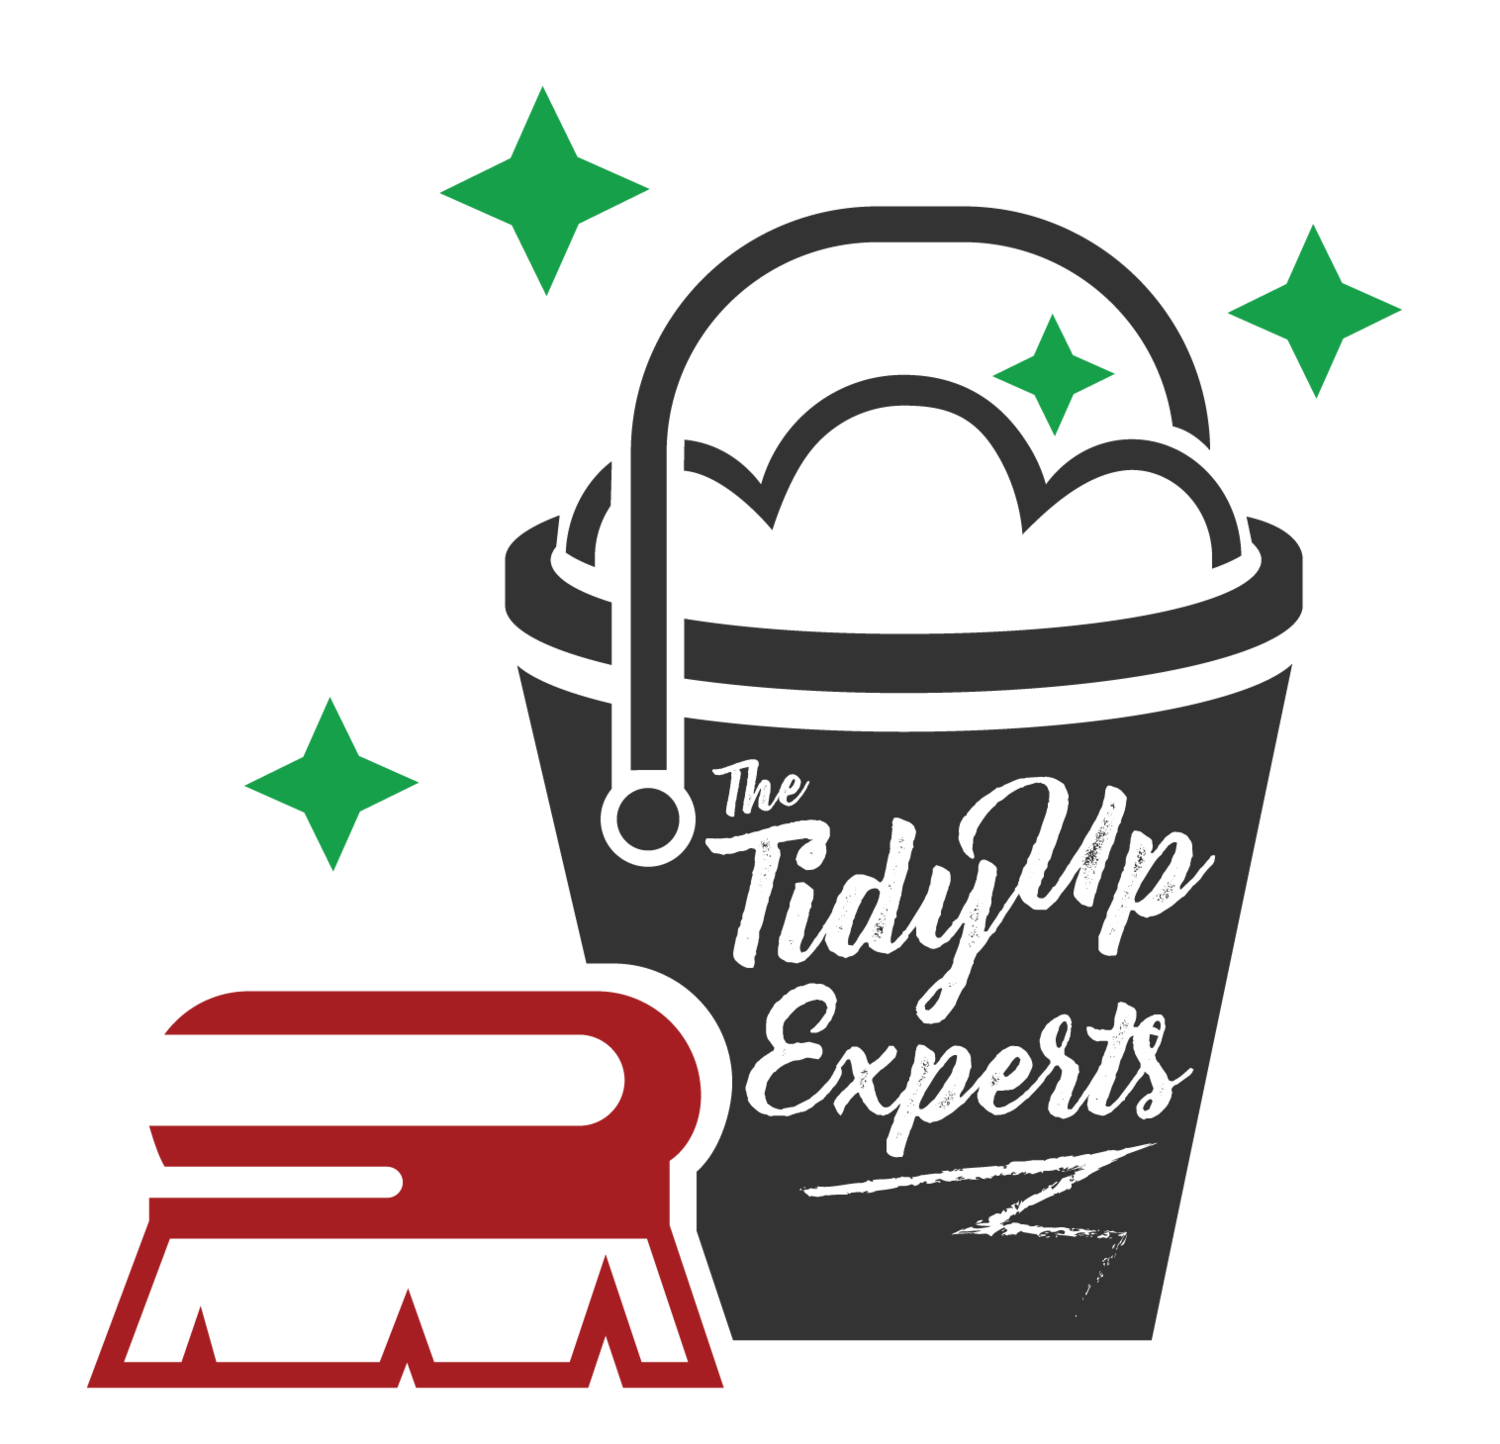 Tidy Up Experts